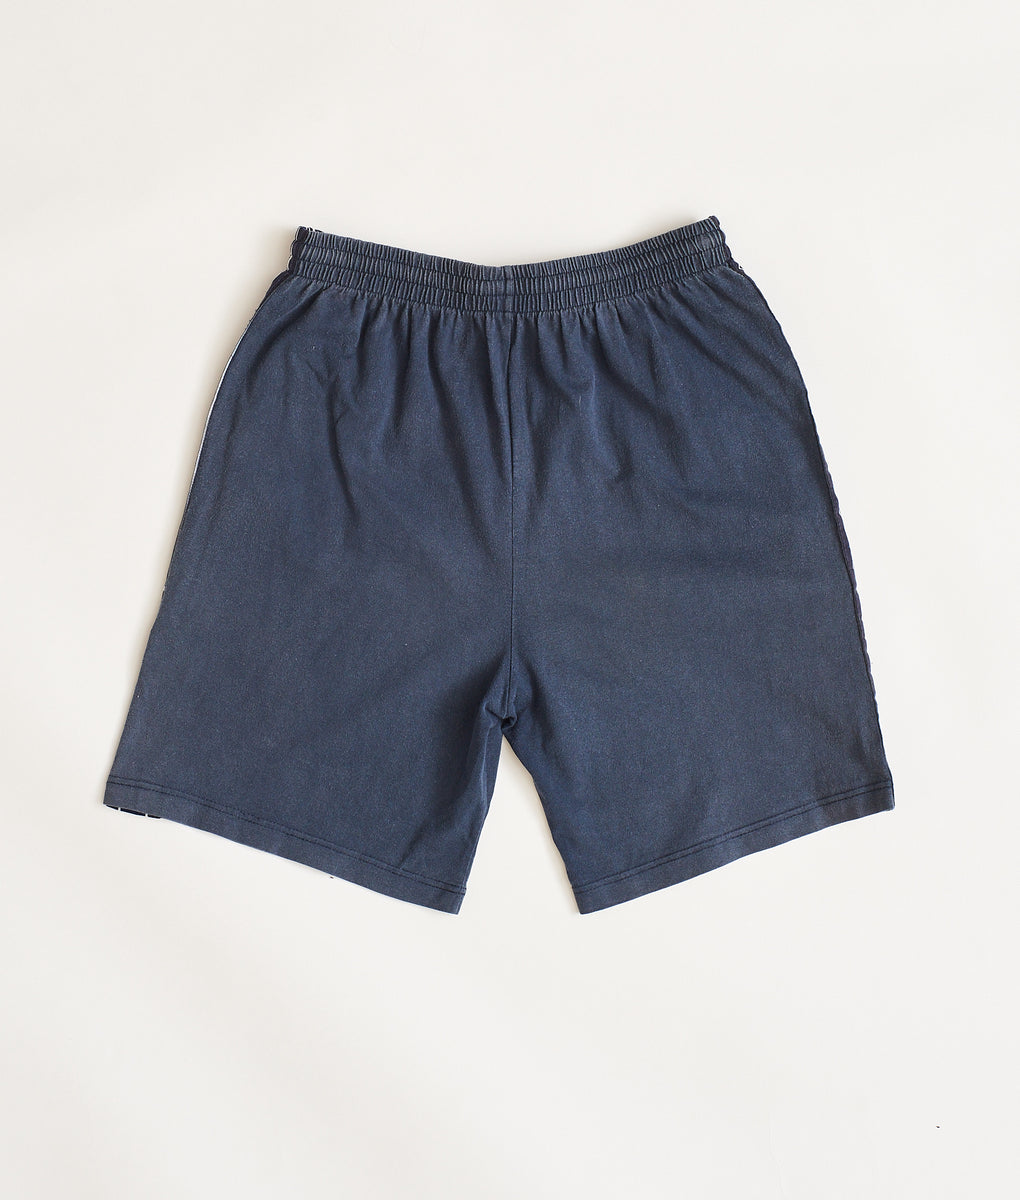 Champion USA Shorts (M) - FROTHLYF